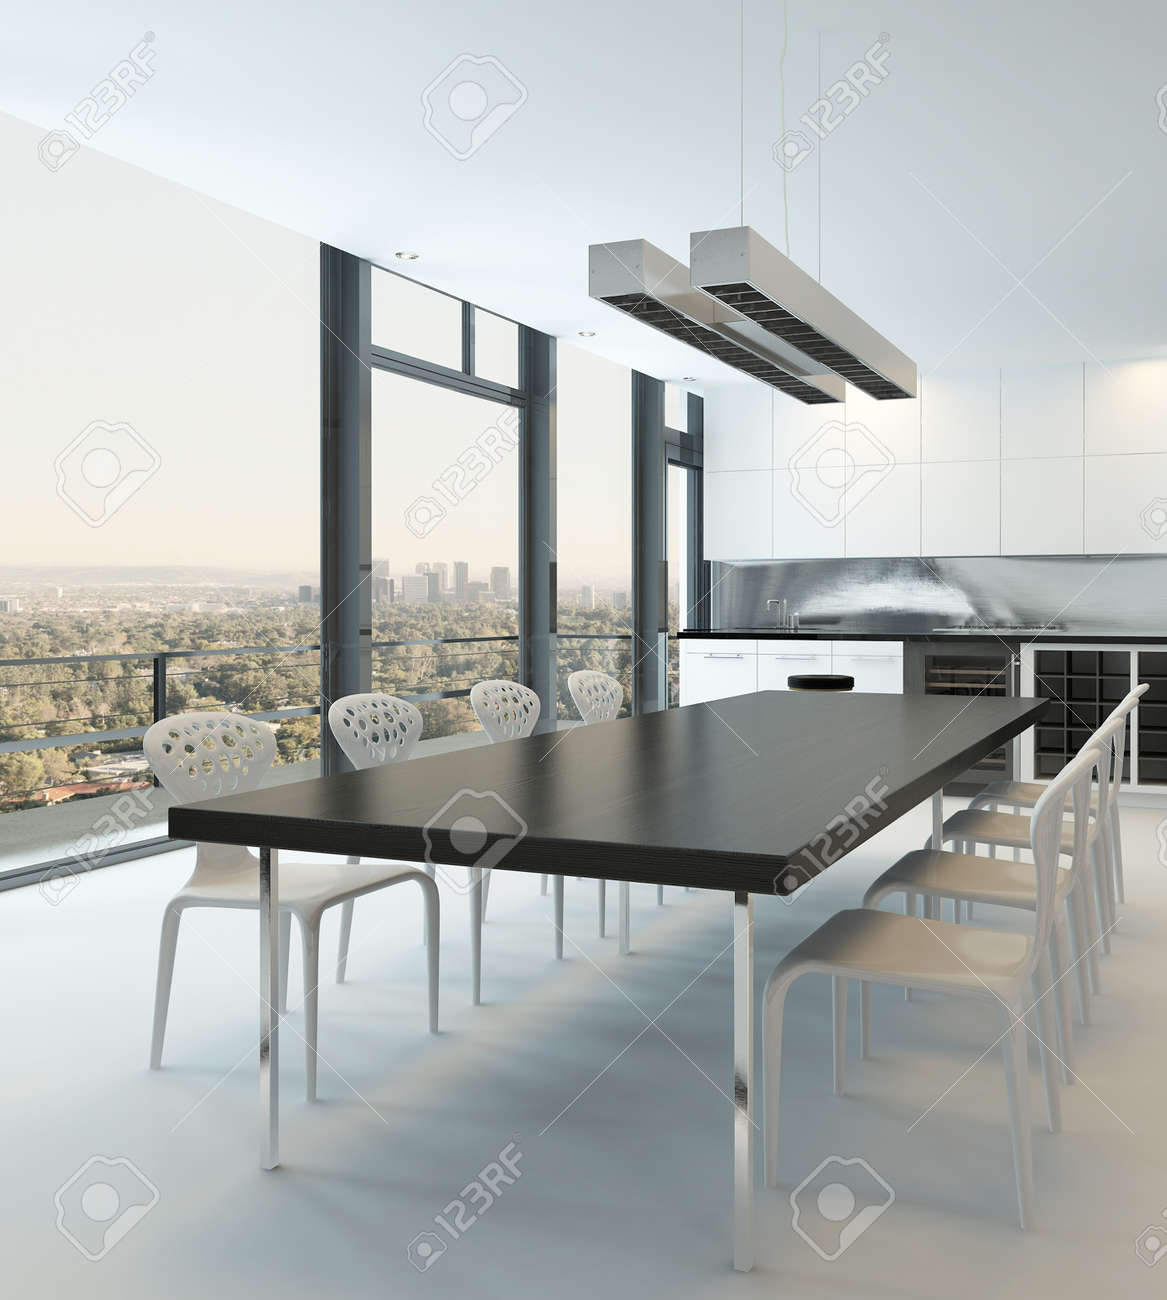 Esstisch Esszimmer Stock Photo